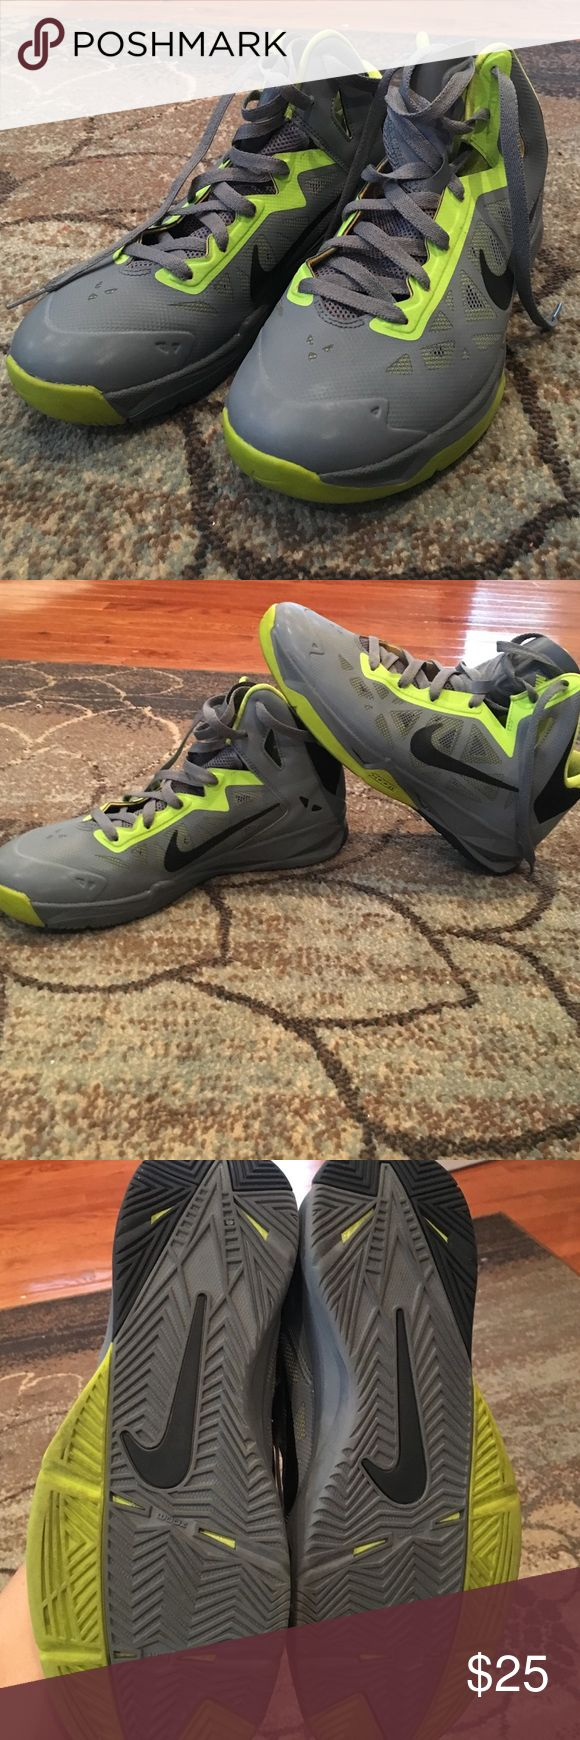 Nike Air Zoom hightop basketball shoes Hardly worn Nike high top basketball shoes. Size 9 men's fits women's 11 Nike Shoes Athletic Shoes